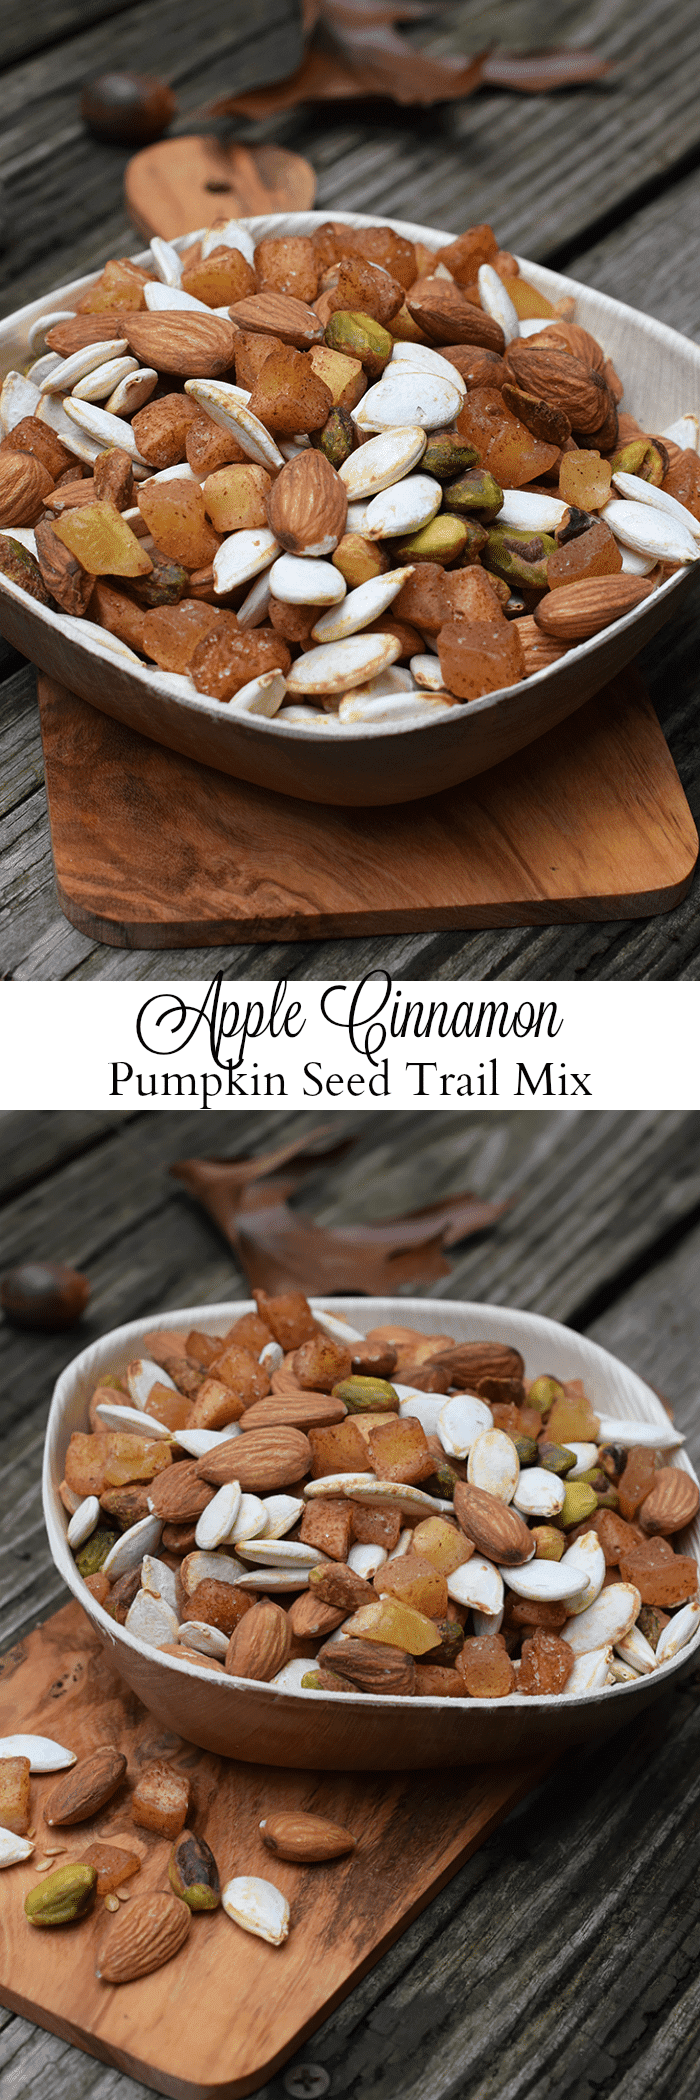 Apple Cinnamon Pumpkin Seed Trail Mix is full of yummy, energy-boosting bites with a slight taste of fall, in case you're craving autumn flavors. It's an easy snack recipe you can prep ahead of time and grab on-the-go.